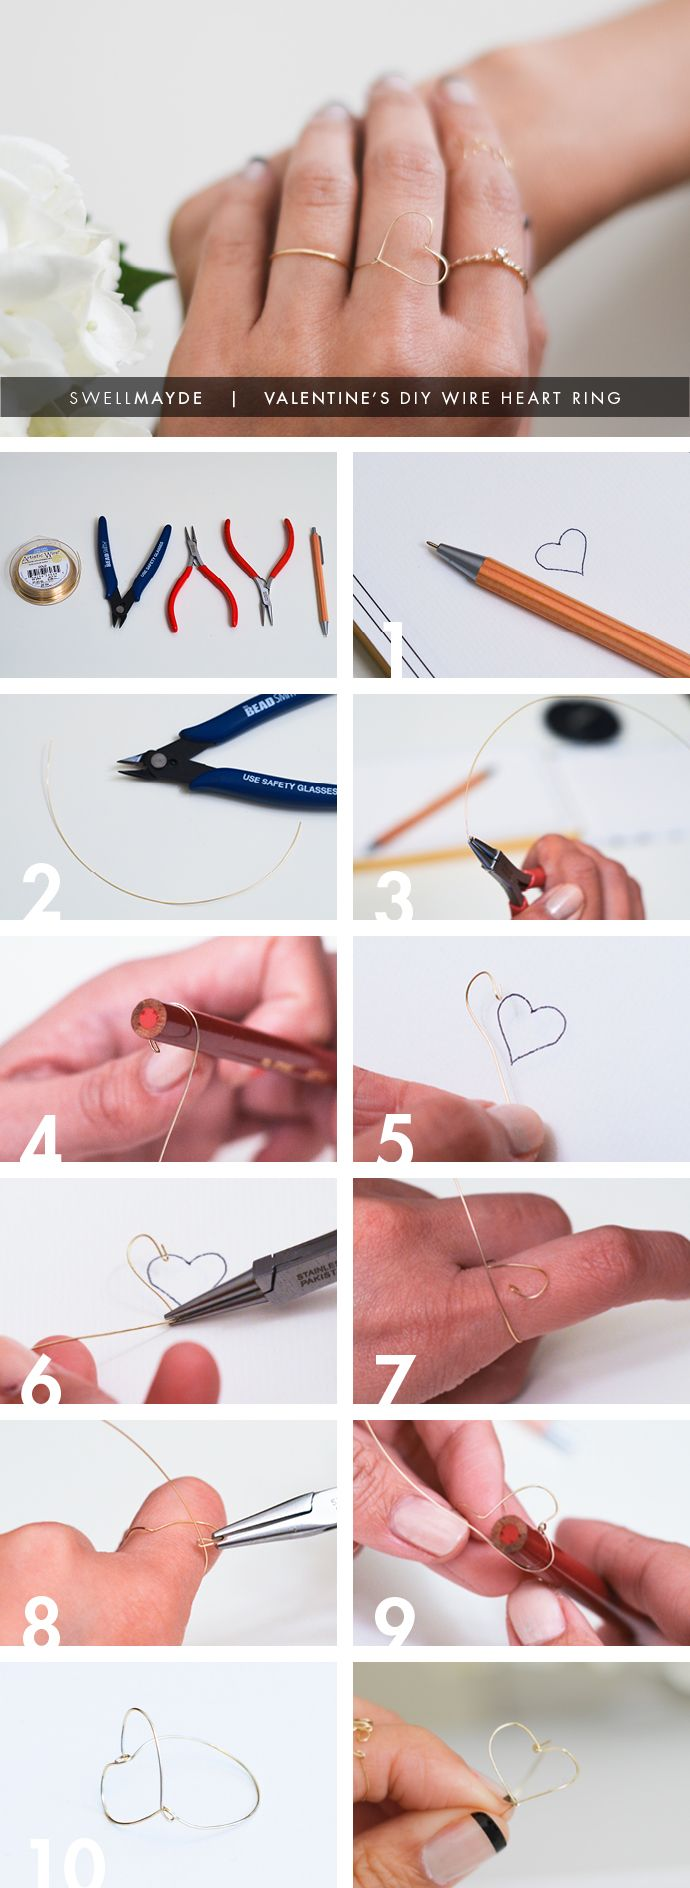 DIY Wire Heart Ring - learn how to make here: http://www.swellmayde.com/2013/01/valentines-diy-wire-heart-ring.html #flowergirl #diy #valentinesday